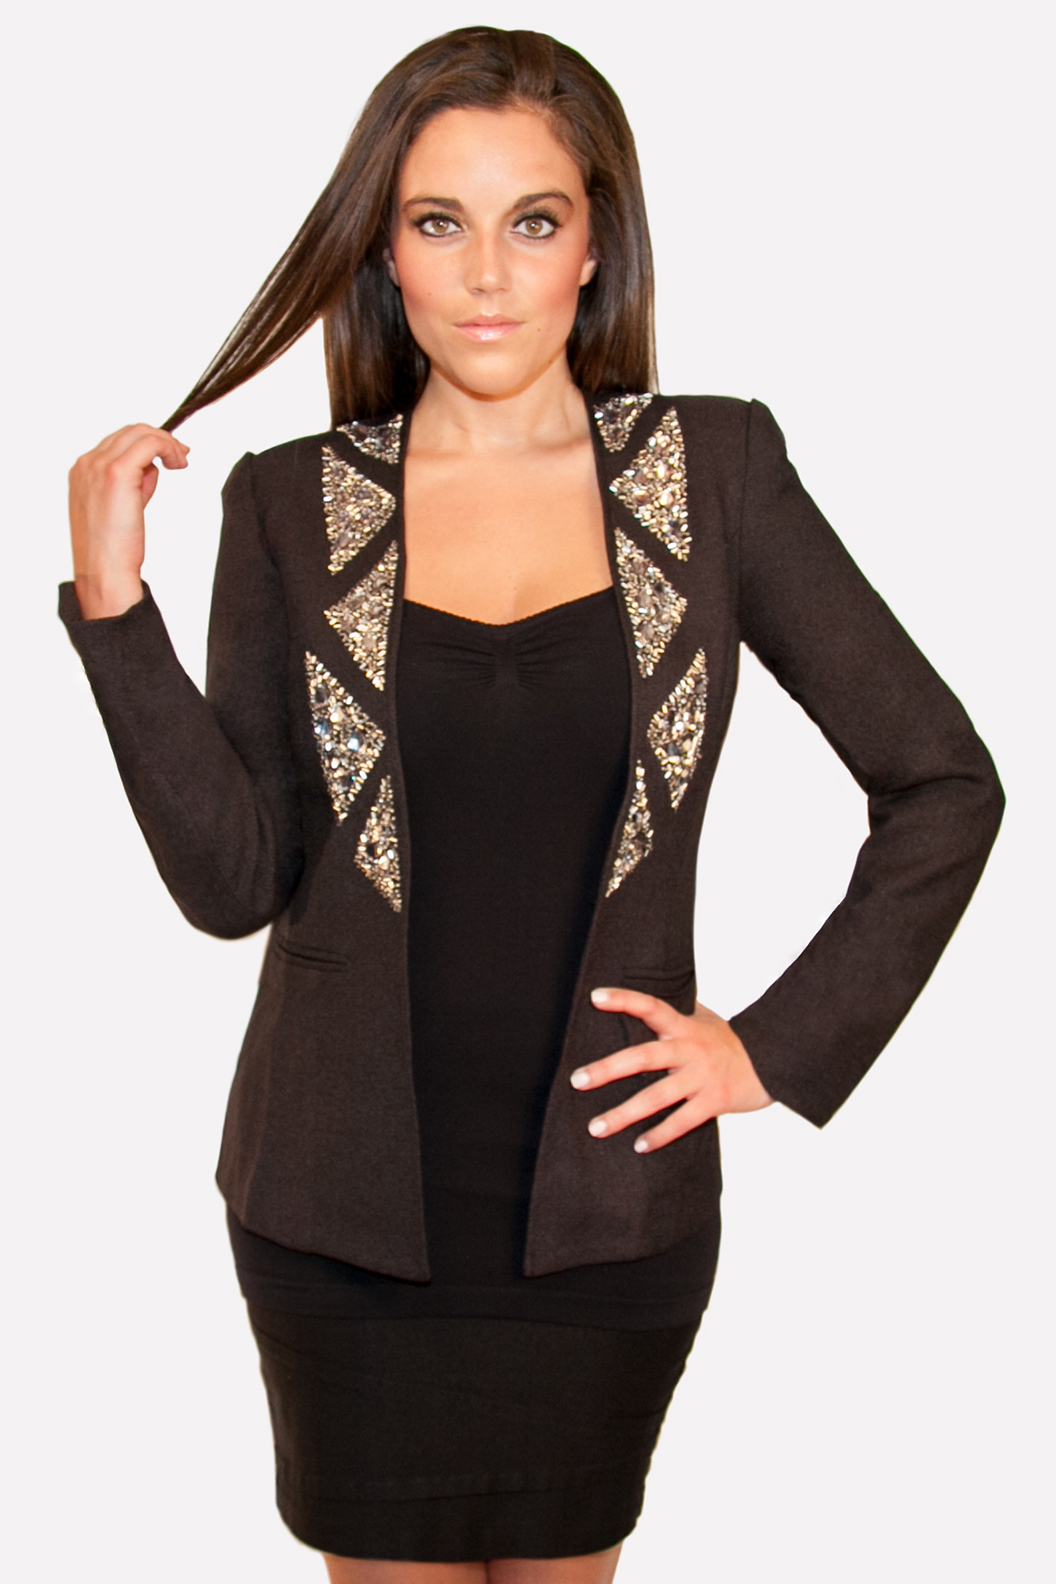 Hommage, Black Blazer with Crystal Collar, Hommage Blazer, Hommage images, Hommage Womens Clothing